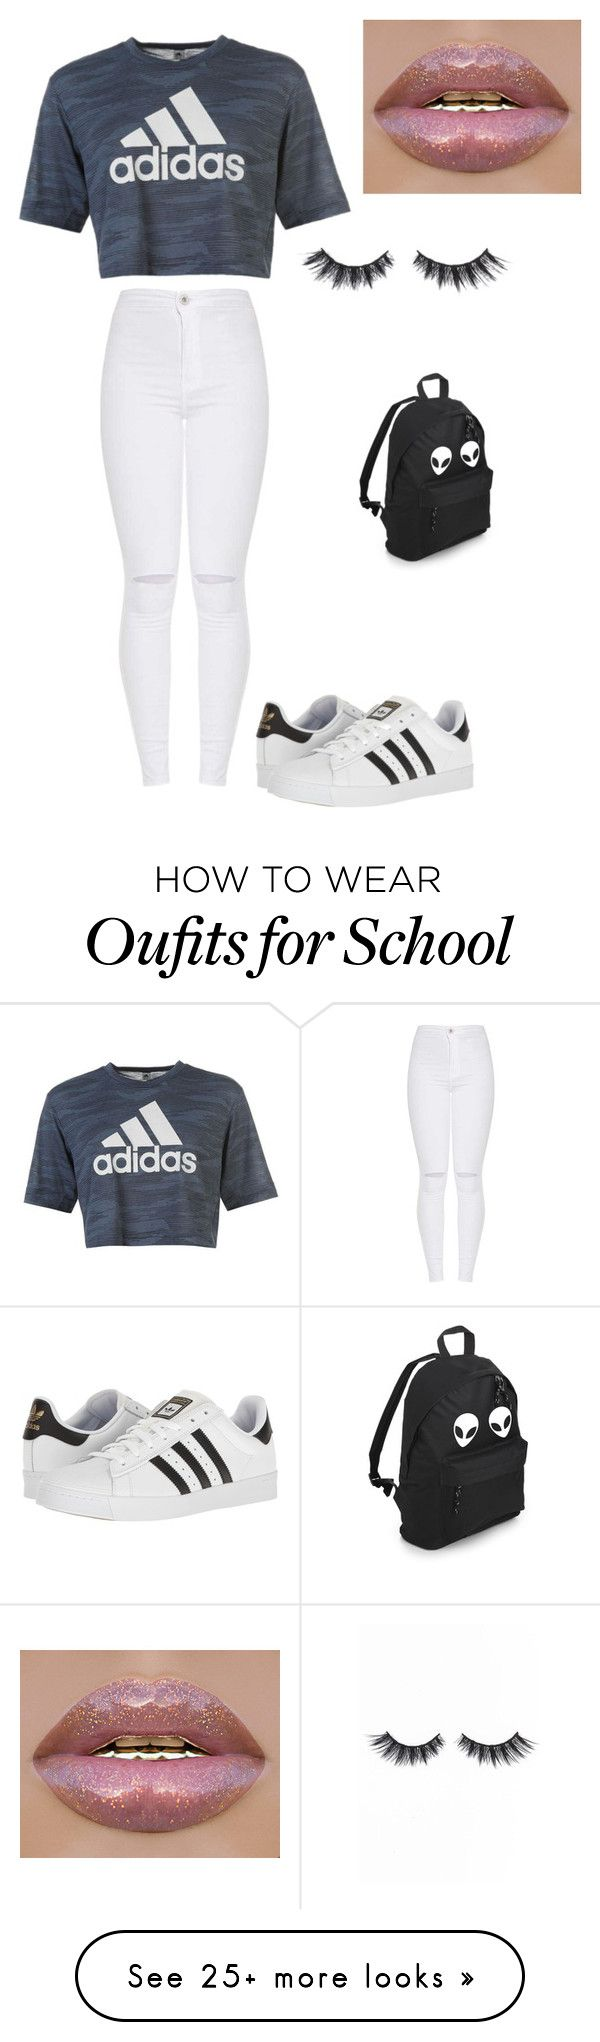 Adida outfit by zowie-sandoval on Polyvore featuring adidas and Violet Voss ,Adidas Shoes Online,#adidas #shoes